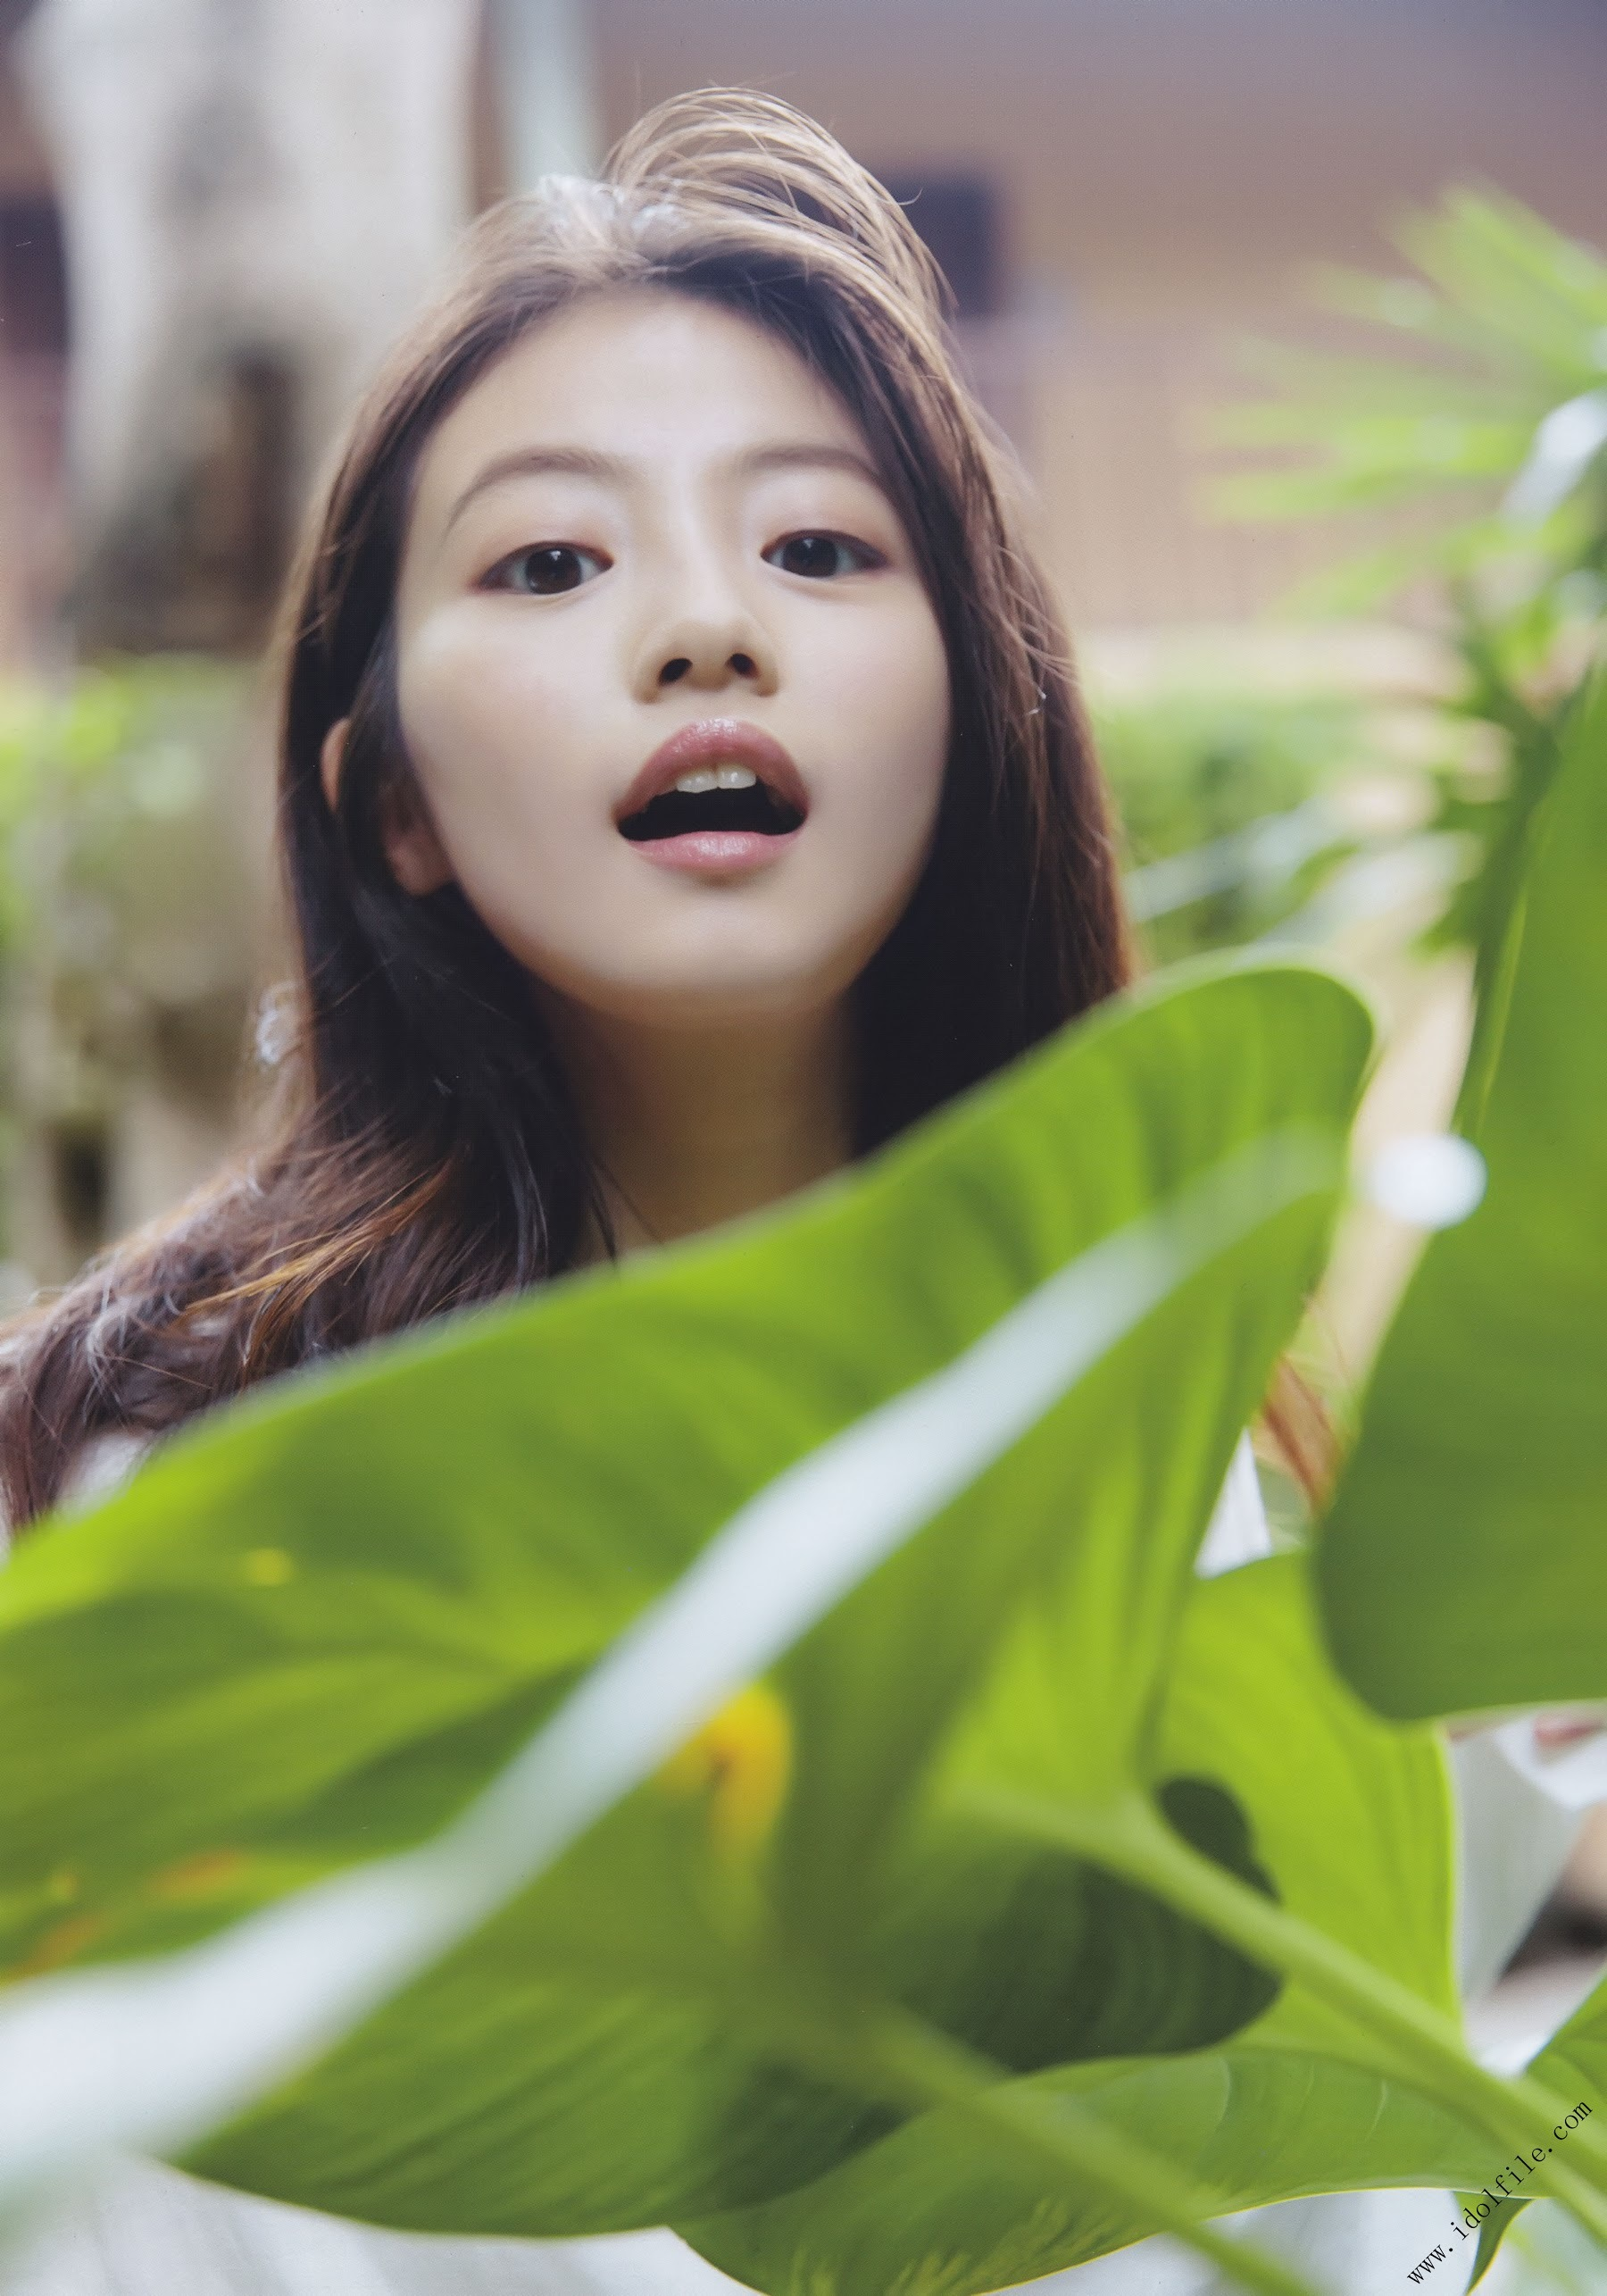 Pretty and beautiful, 22 years old and innocent Moving to the next stage as an actress Mio Imada016